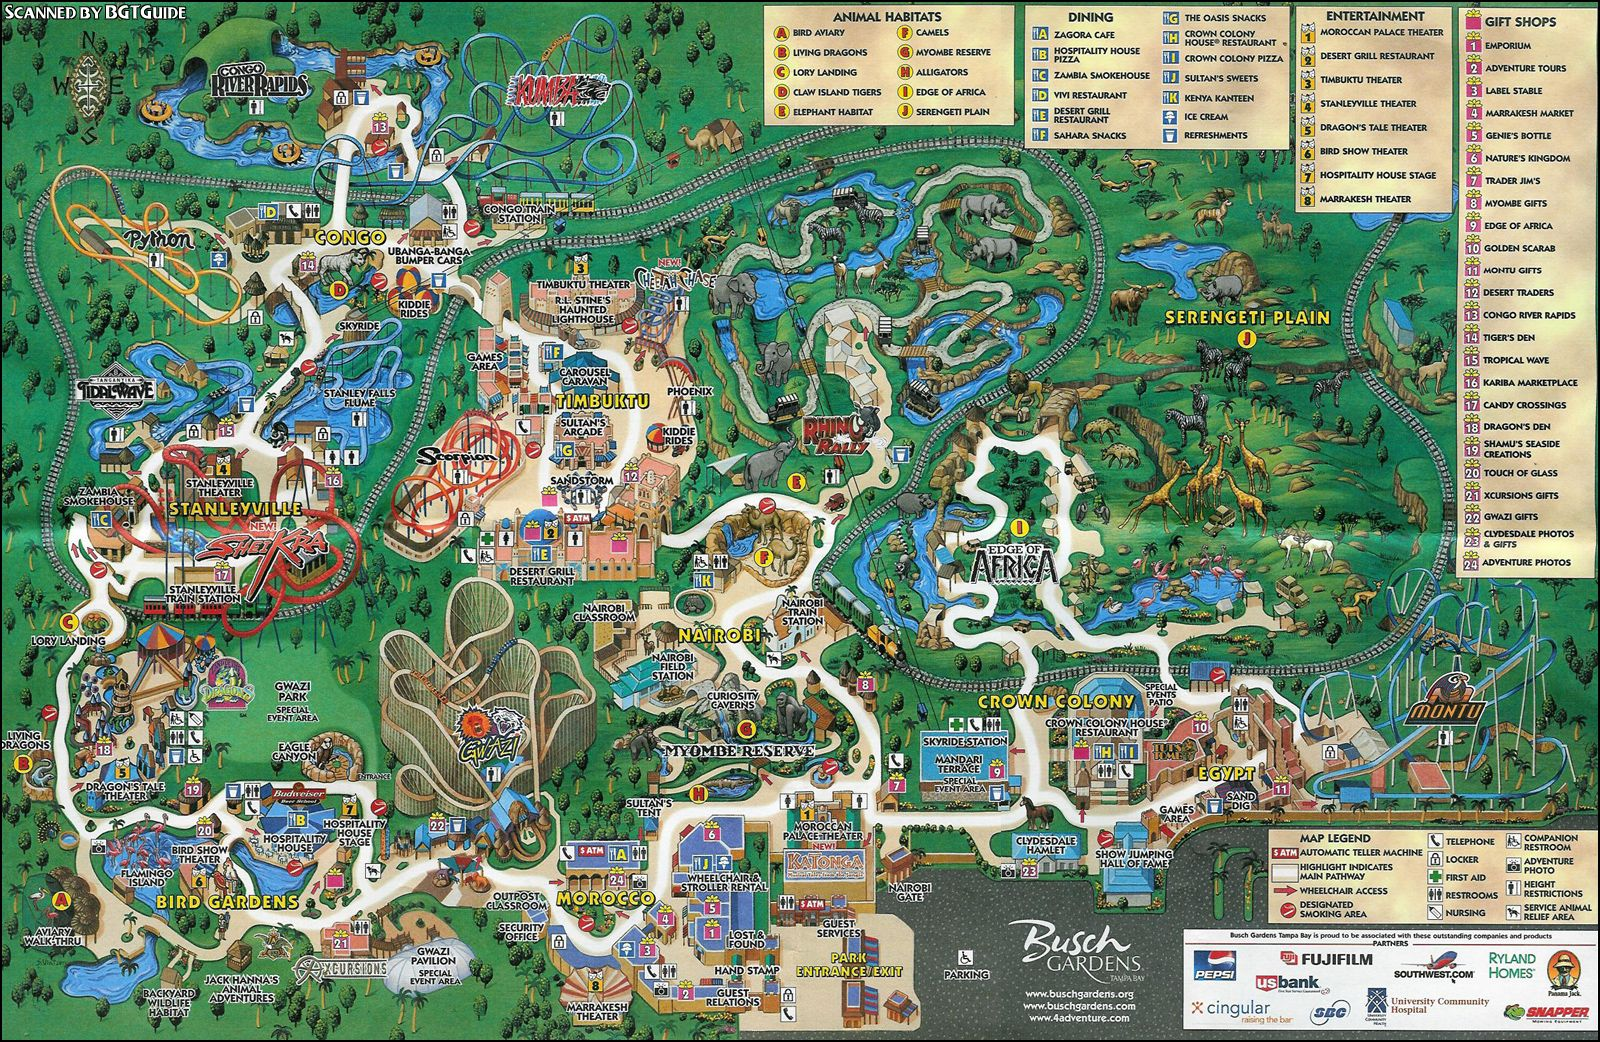 def08bc47e11217e45af3ca514b624d9 - Directions To Busch Gardens Tampa Florida